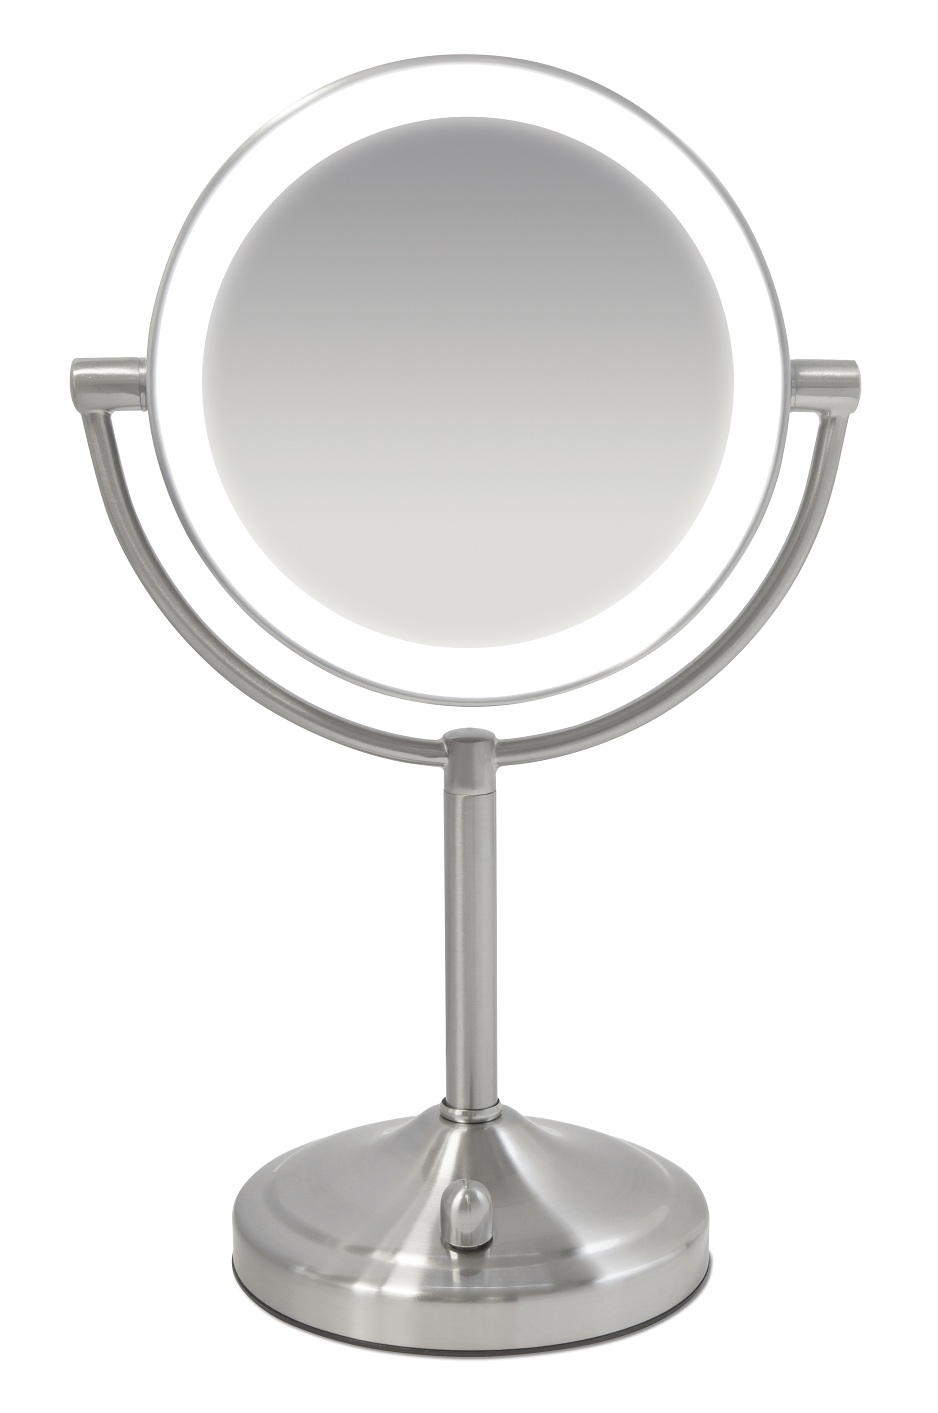 Homedics Spa Double Sided Beauty Make Up Mirror Inc